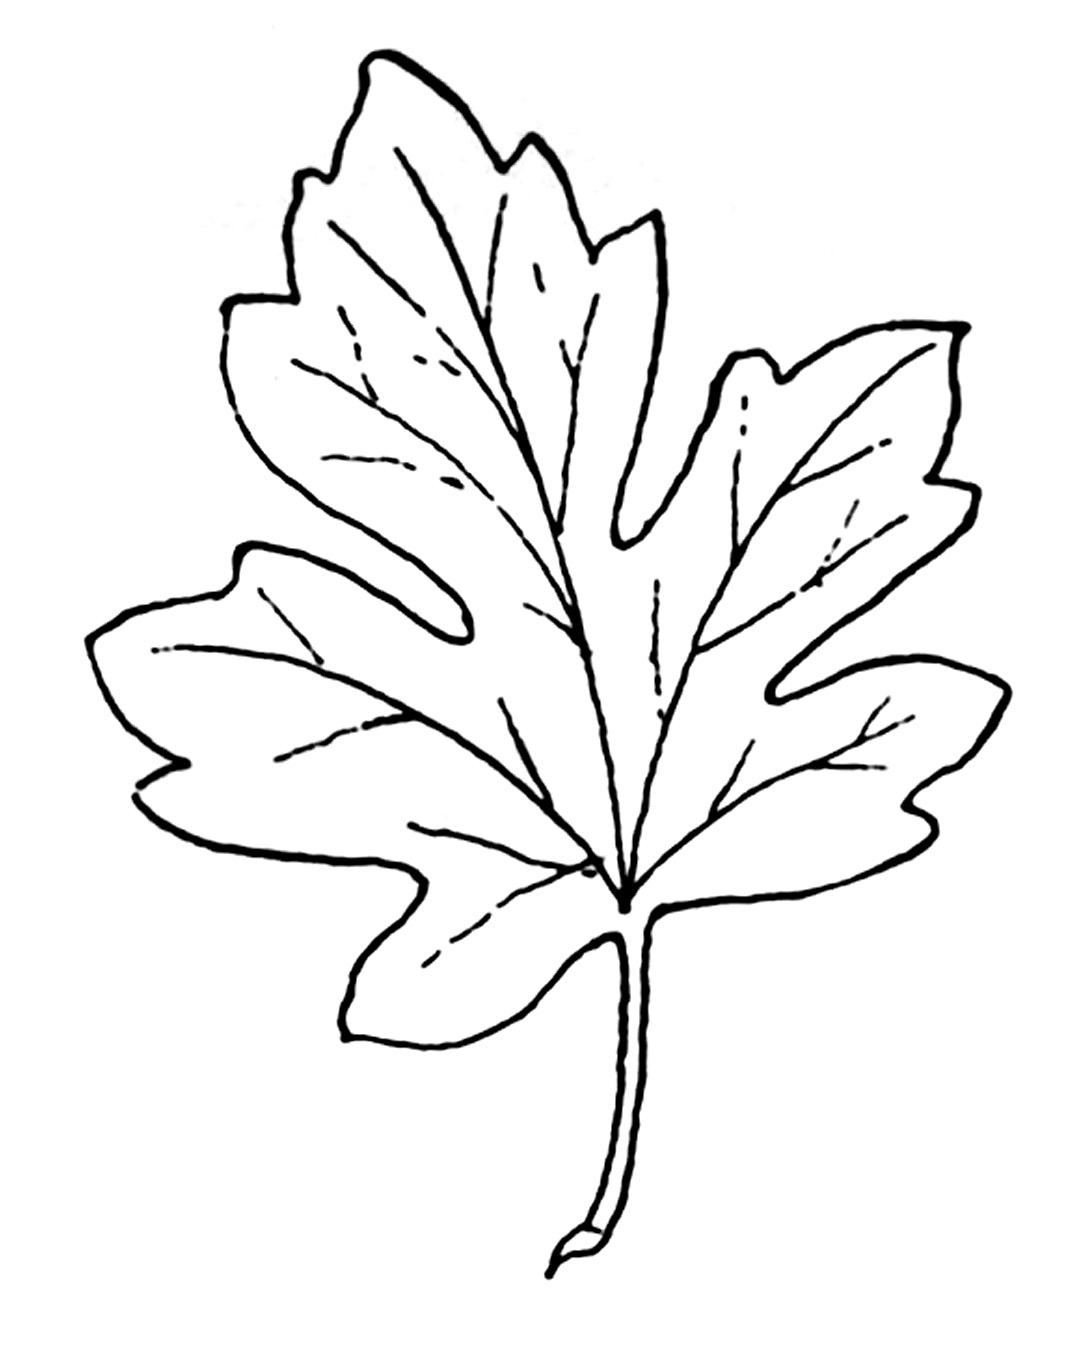 Black and white leaf clipart.